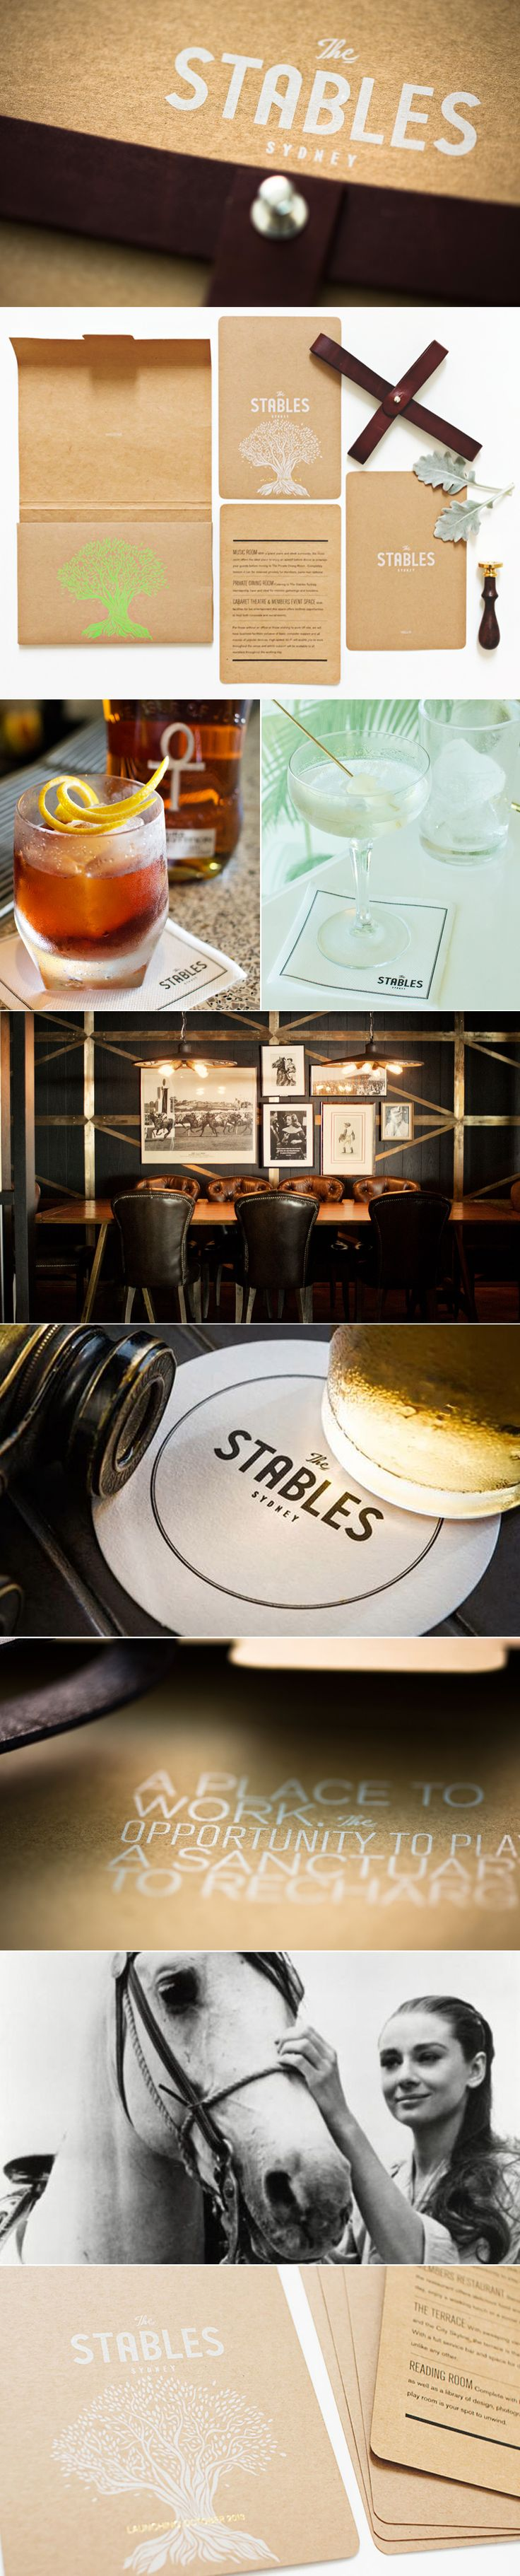 Created the branding for The Stables. An elite members club set on the top level of the Australia Turf Club in Randwick Racecourse.